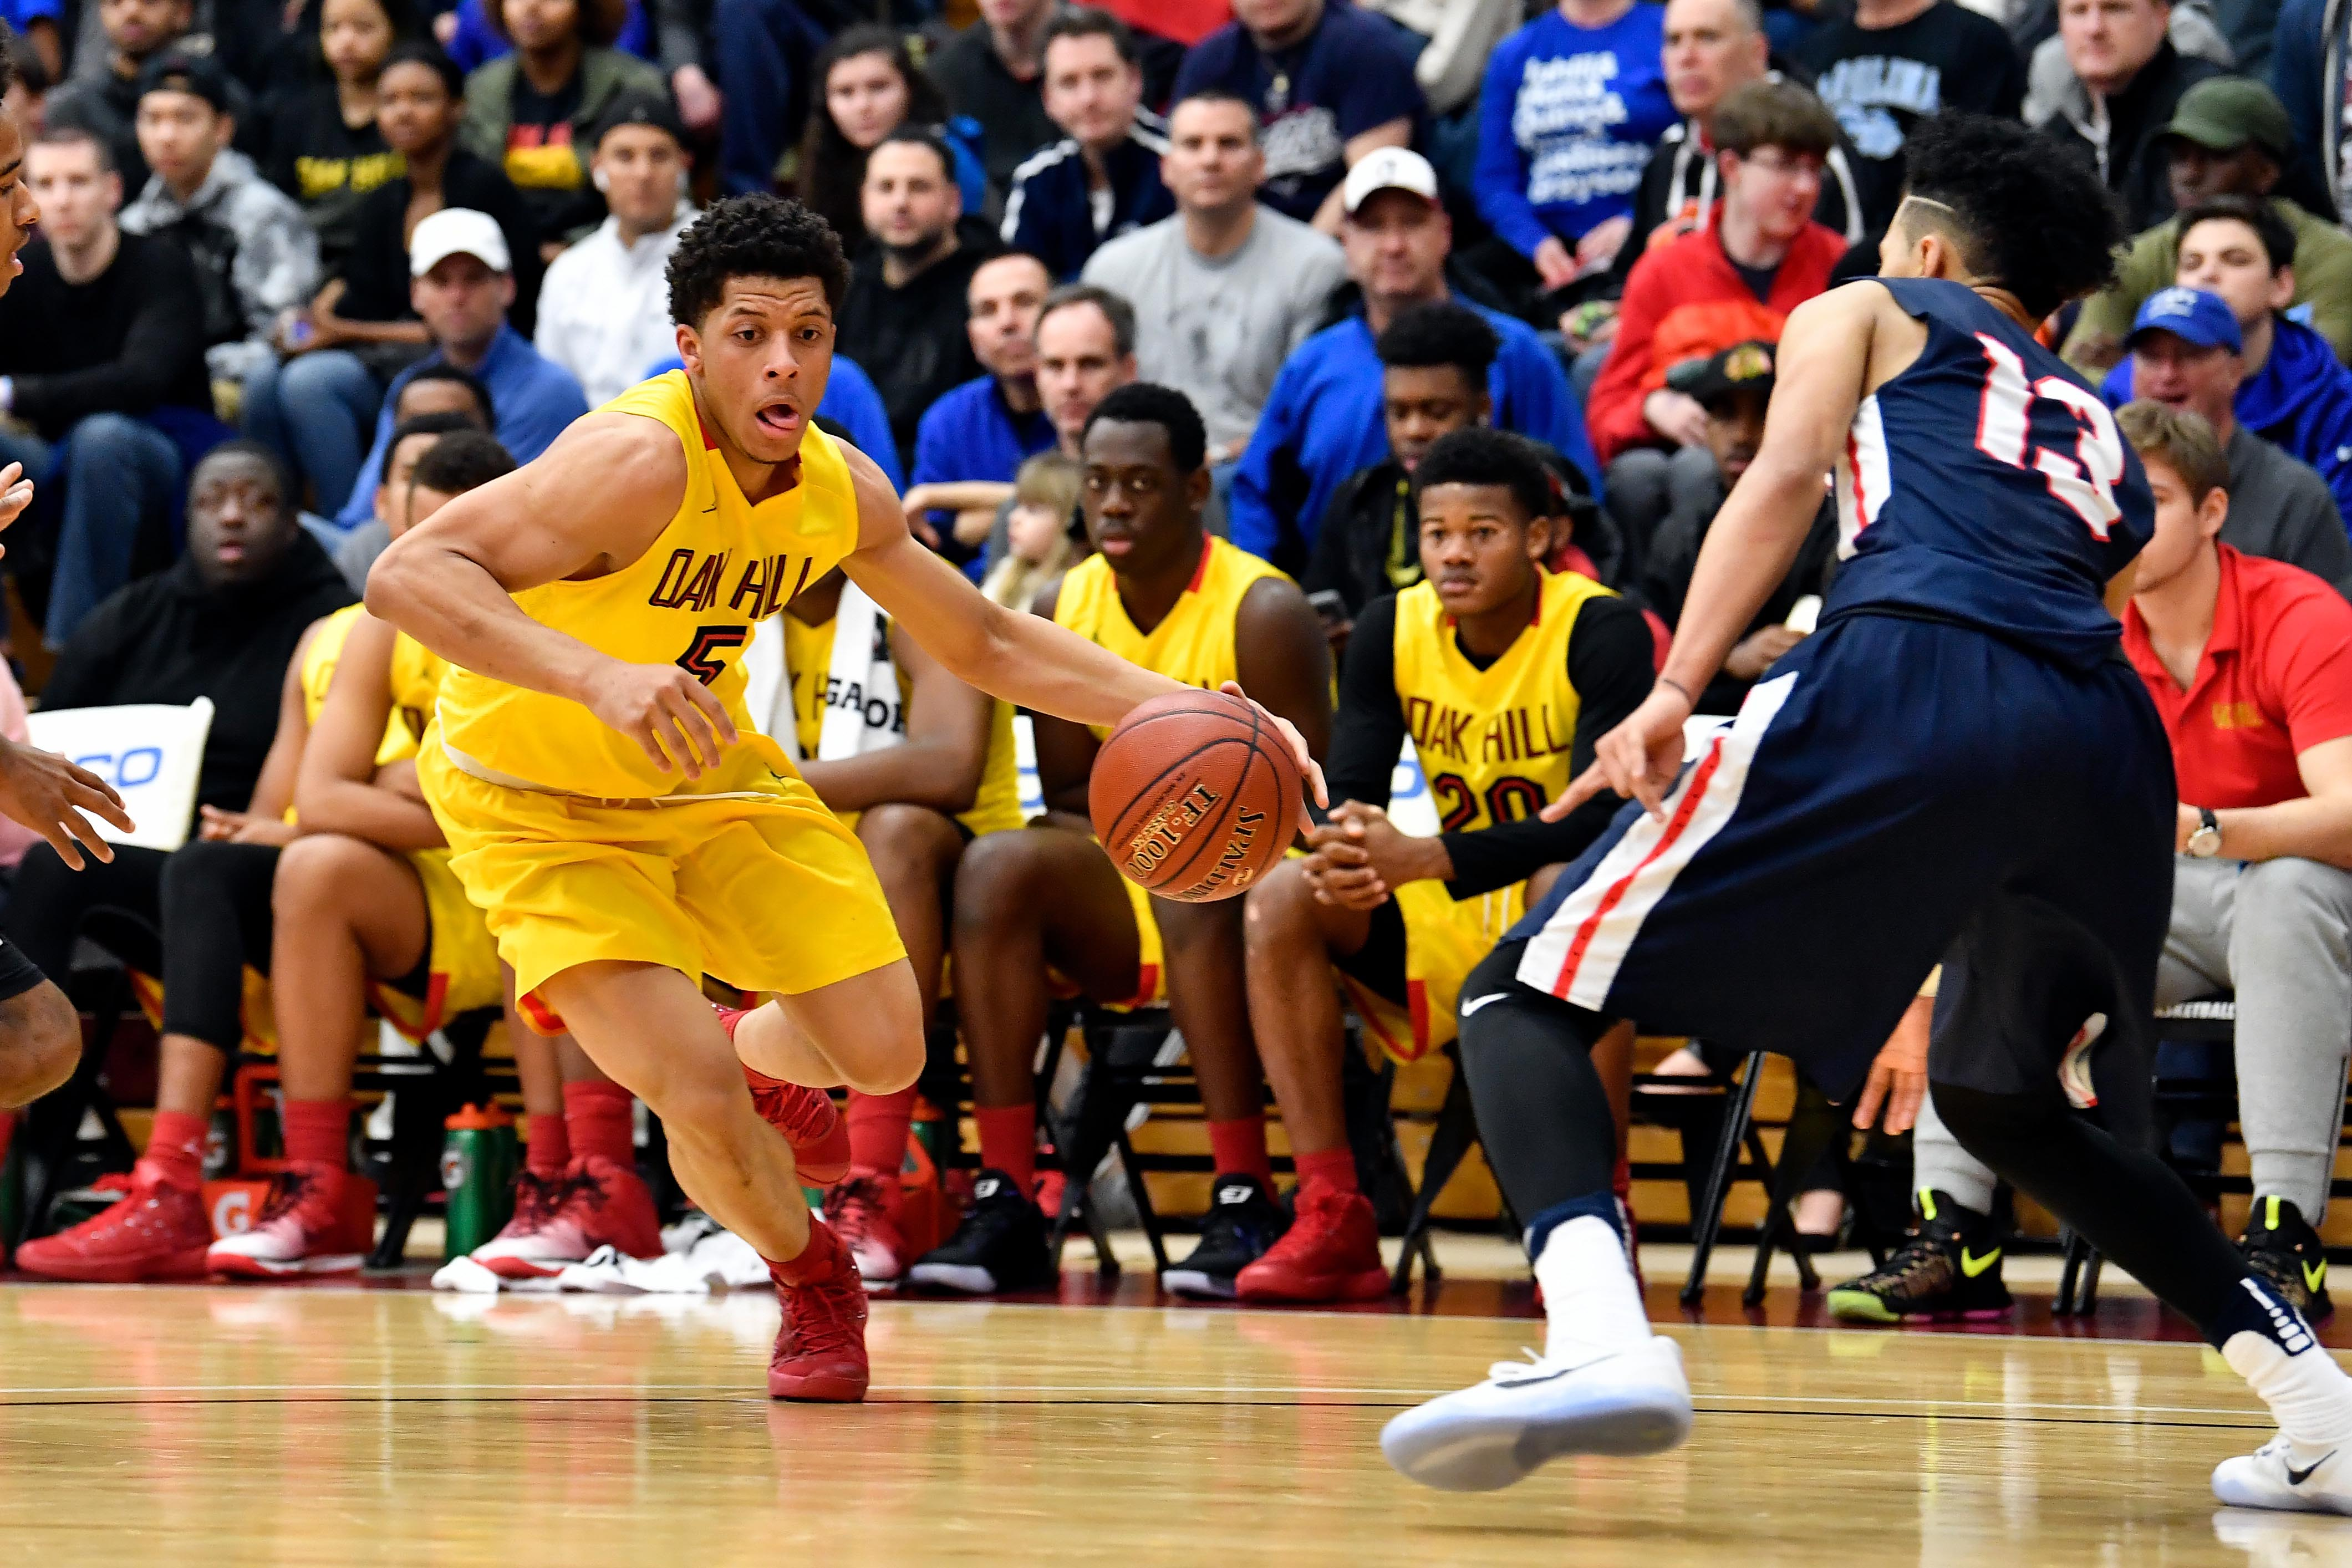 Jan 16, 2017; Springfield , MA, USA; Oak Hill Academy Warriors player Lindell Wigginton (5) drives to the basket around Nathan Hale High School Raiders player Tre-Var Holland (13) at Blake Arena. Mandatory Credit: Brian Fluharty-USA TODAY Sports ORG XMIT: USATSI-355414 ORIG FILE ID: 20170116_ads_fb7_152.JPG